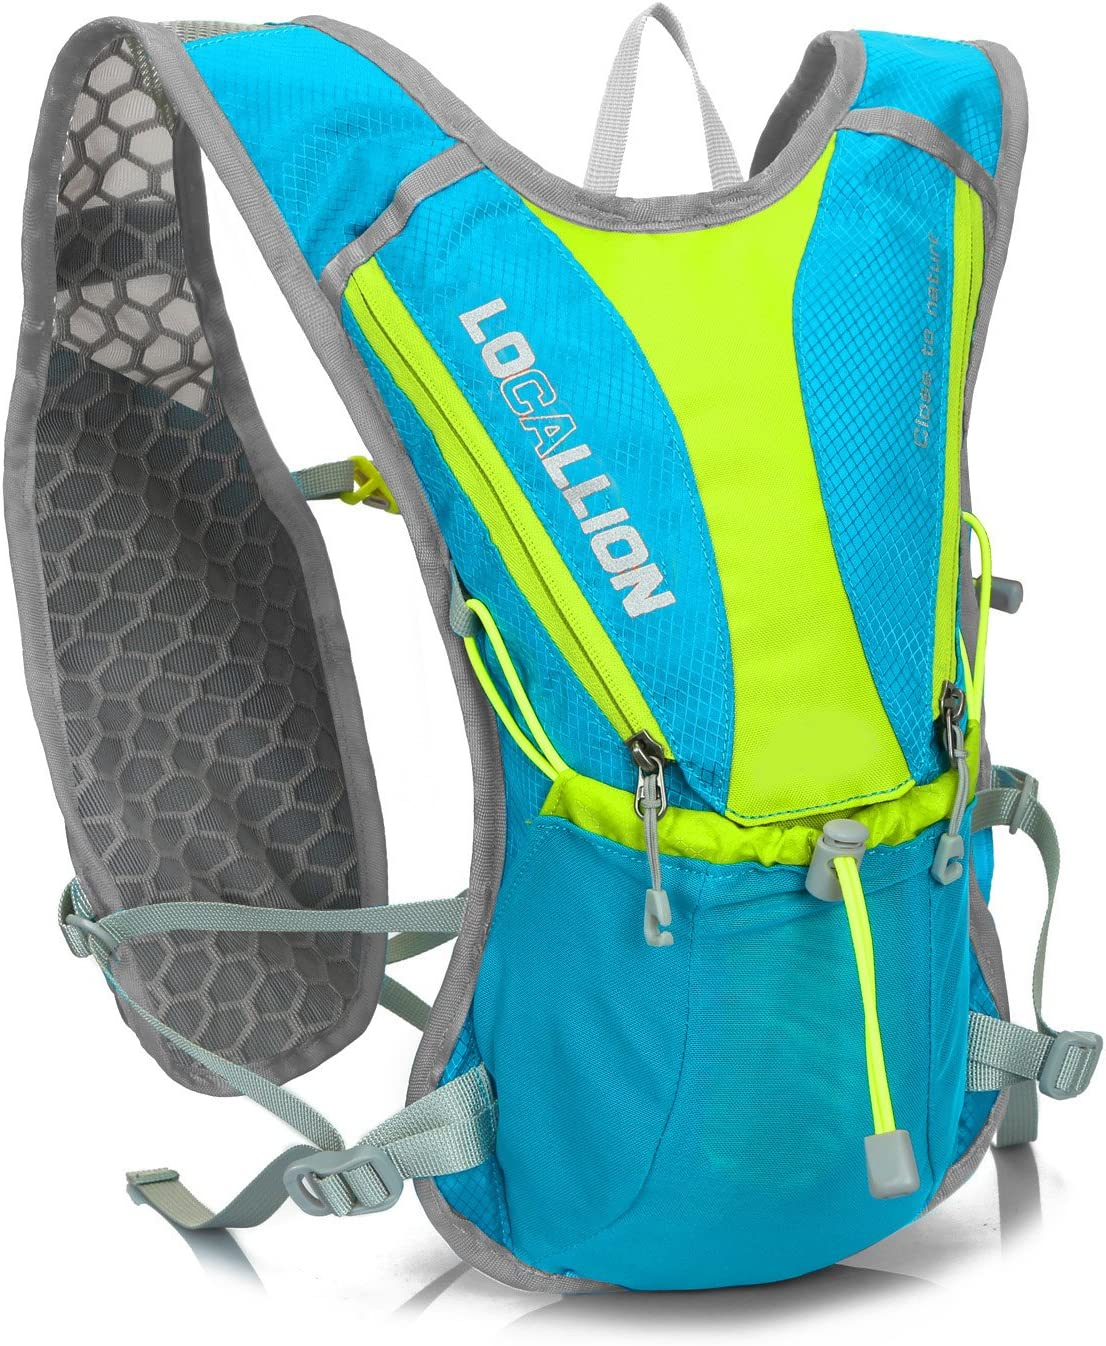 Maidian Hydration Backpack Marathon for Women and Men Lightweight Backpack